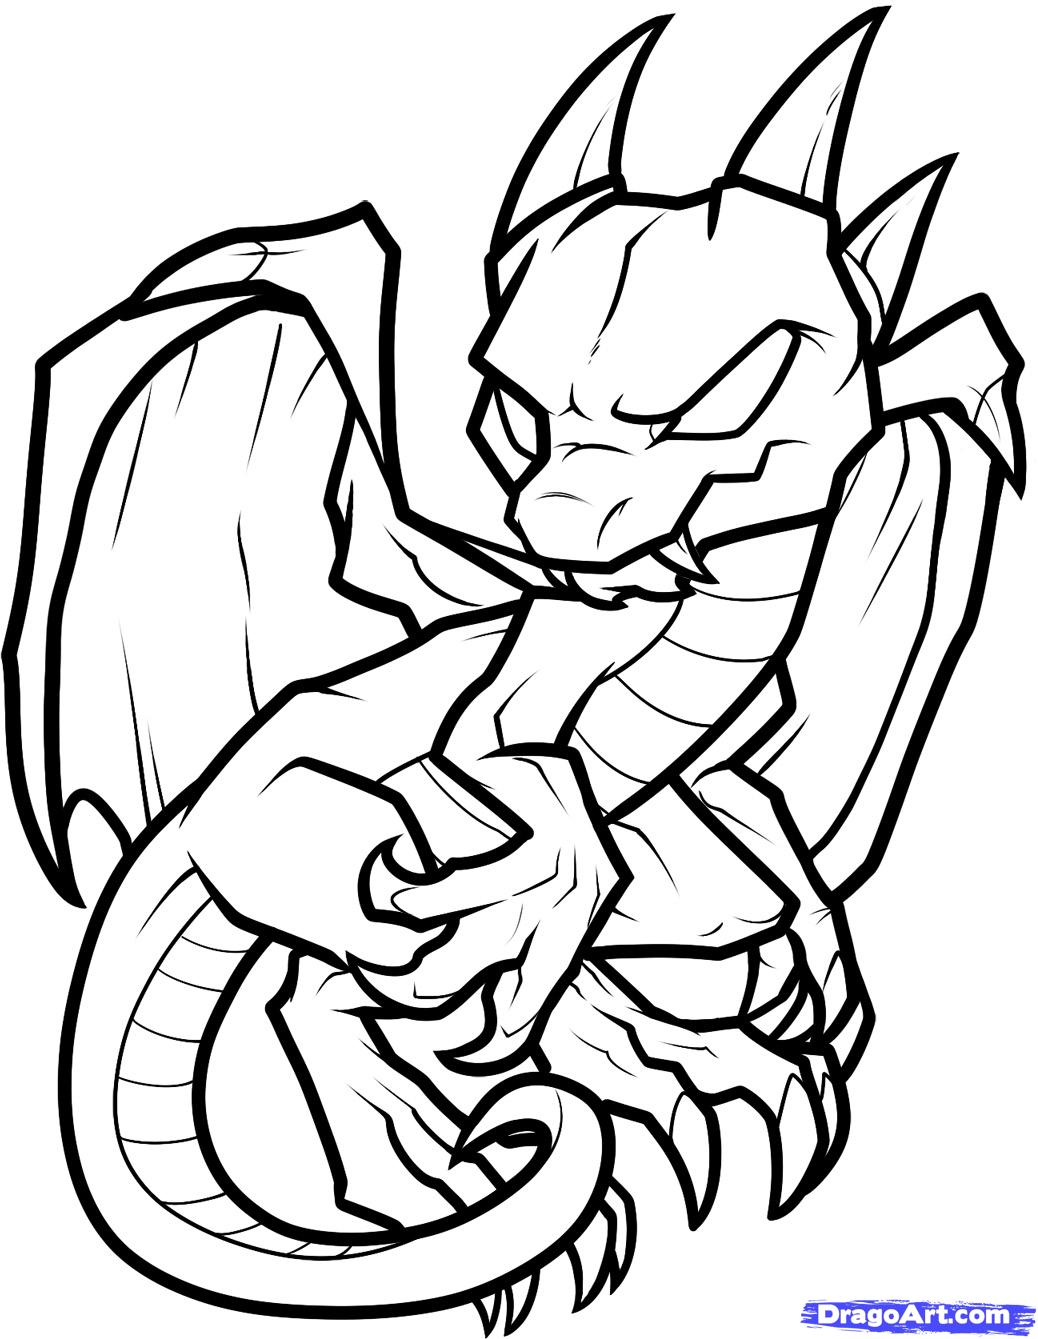 1038x1339 Dragon Coloring Pages How To Draw An Anthro Baby Dragon, Anthro